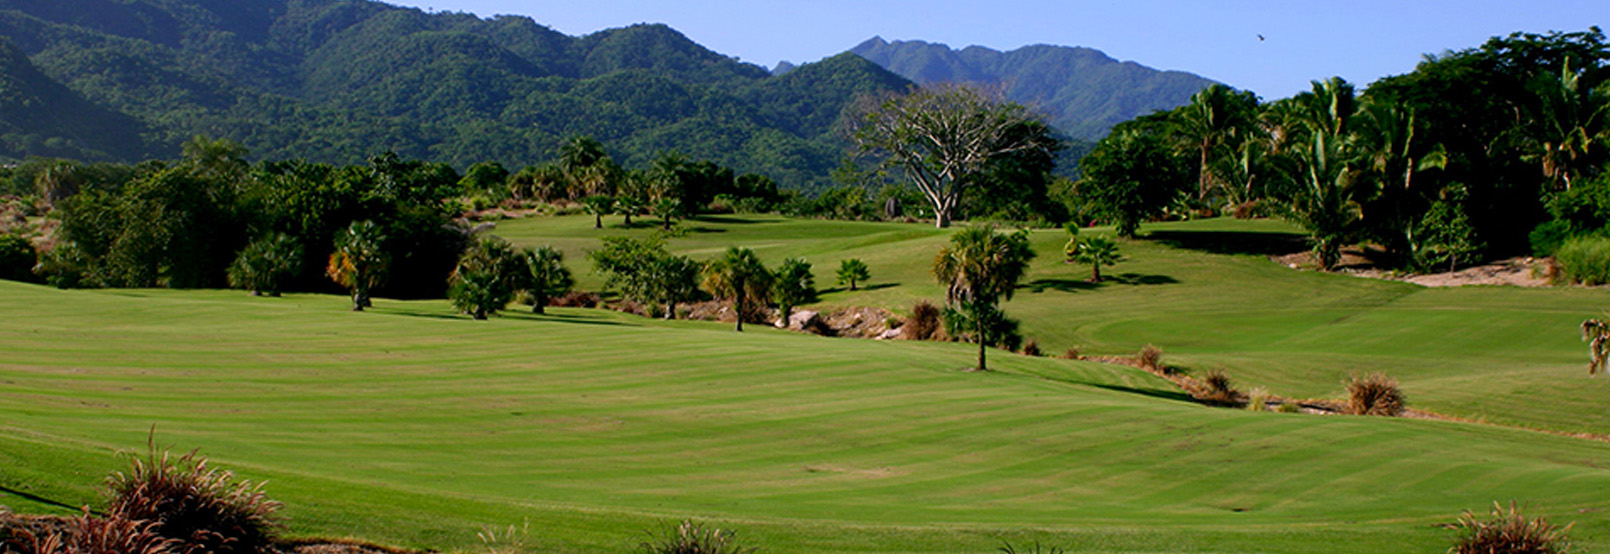 Club de Golf Vista Vallarta Nicklaus